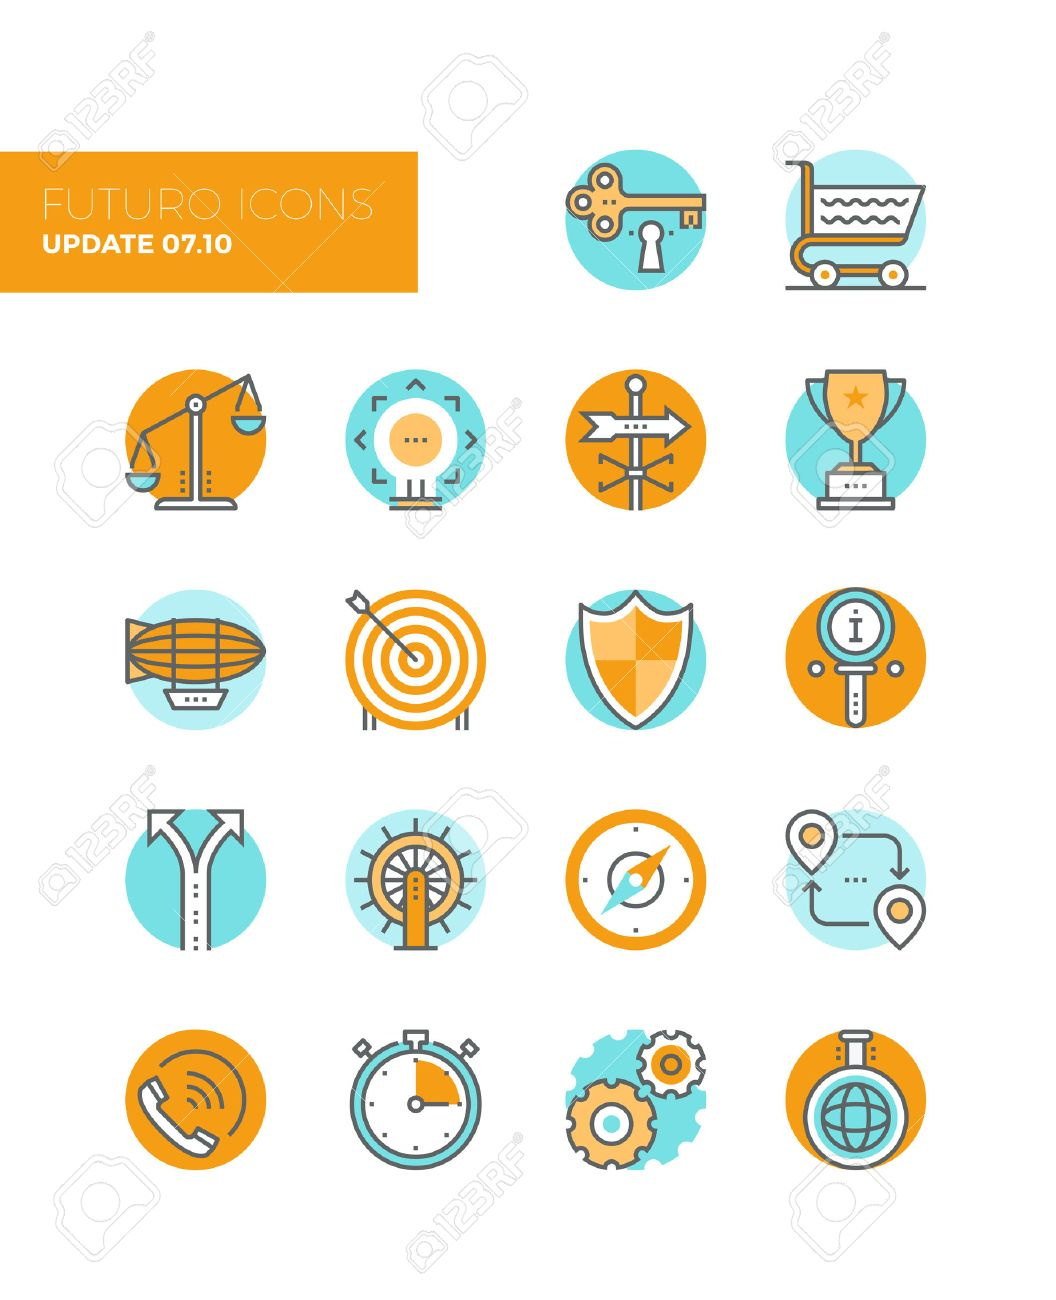 Line icons with flat design elements of business solution symbol, market balance, marketing goal target, key to success, various metaphors. Modern infographic vector icon pictogram collection concept. Stock Vector - 43582199